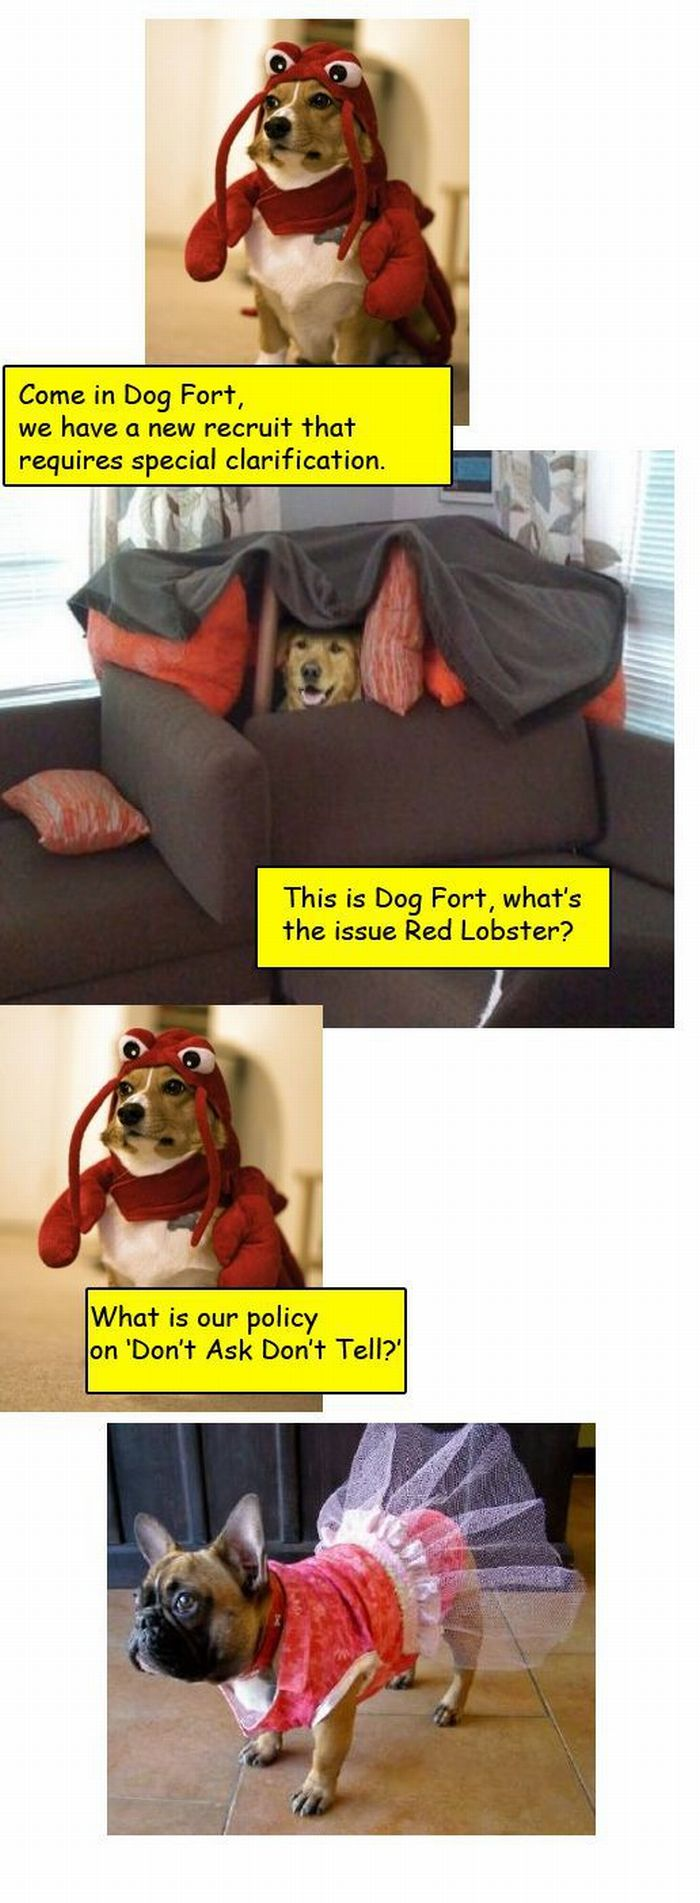 Dog Fort Comics (18 pics)